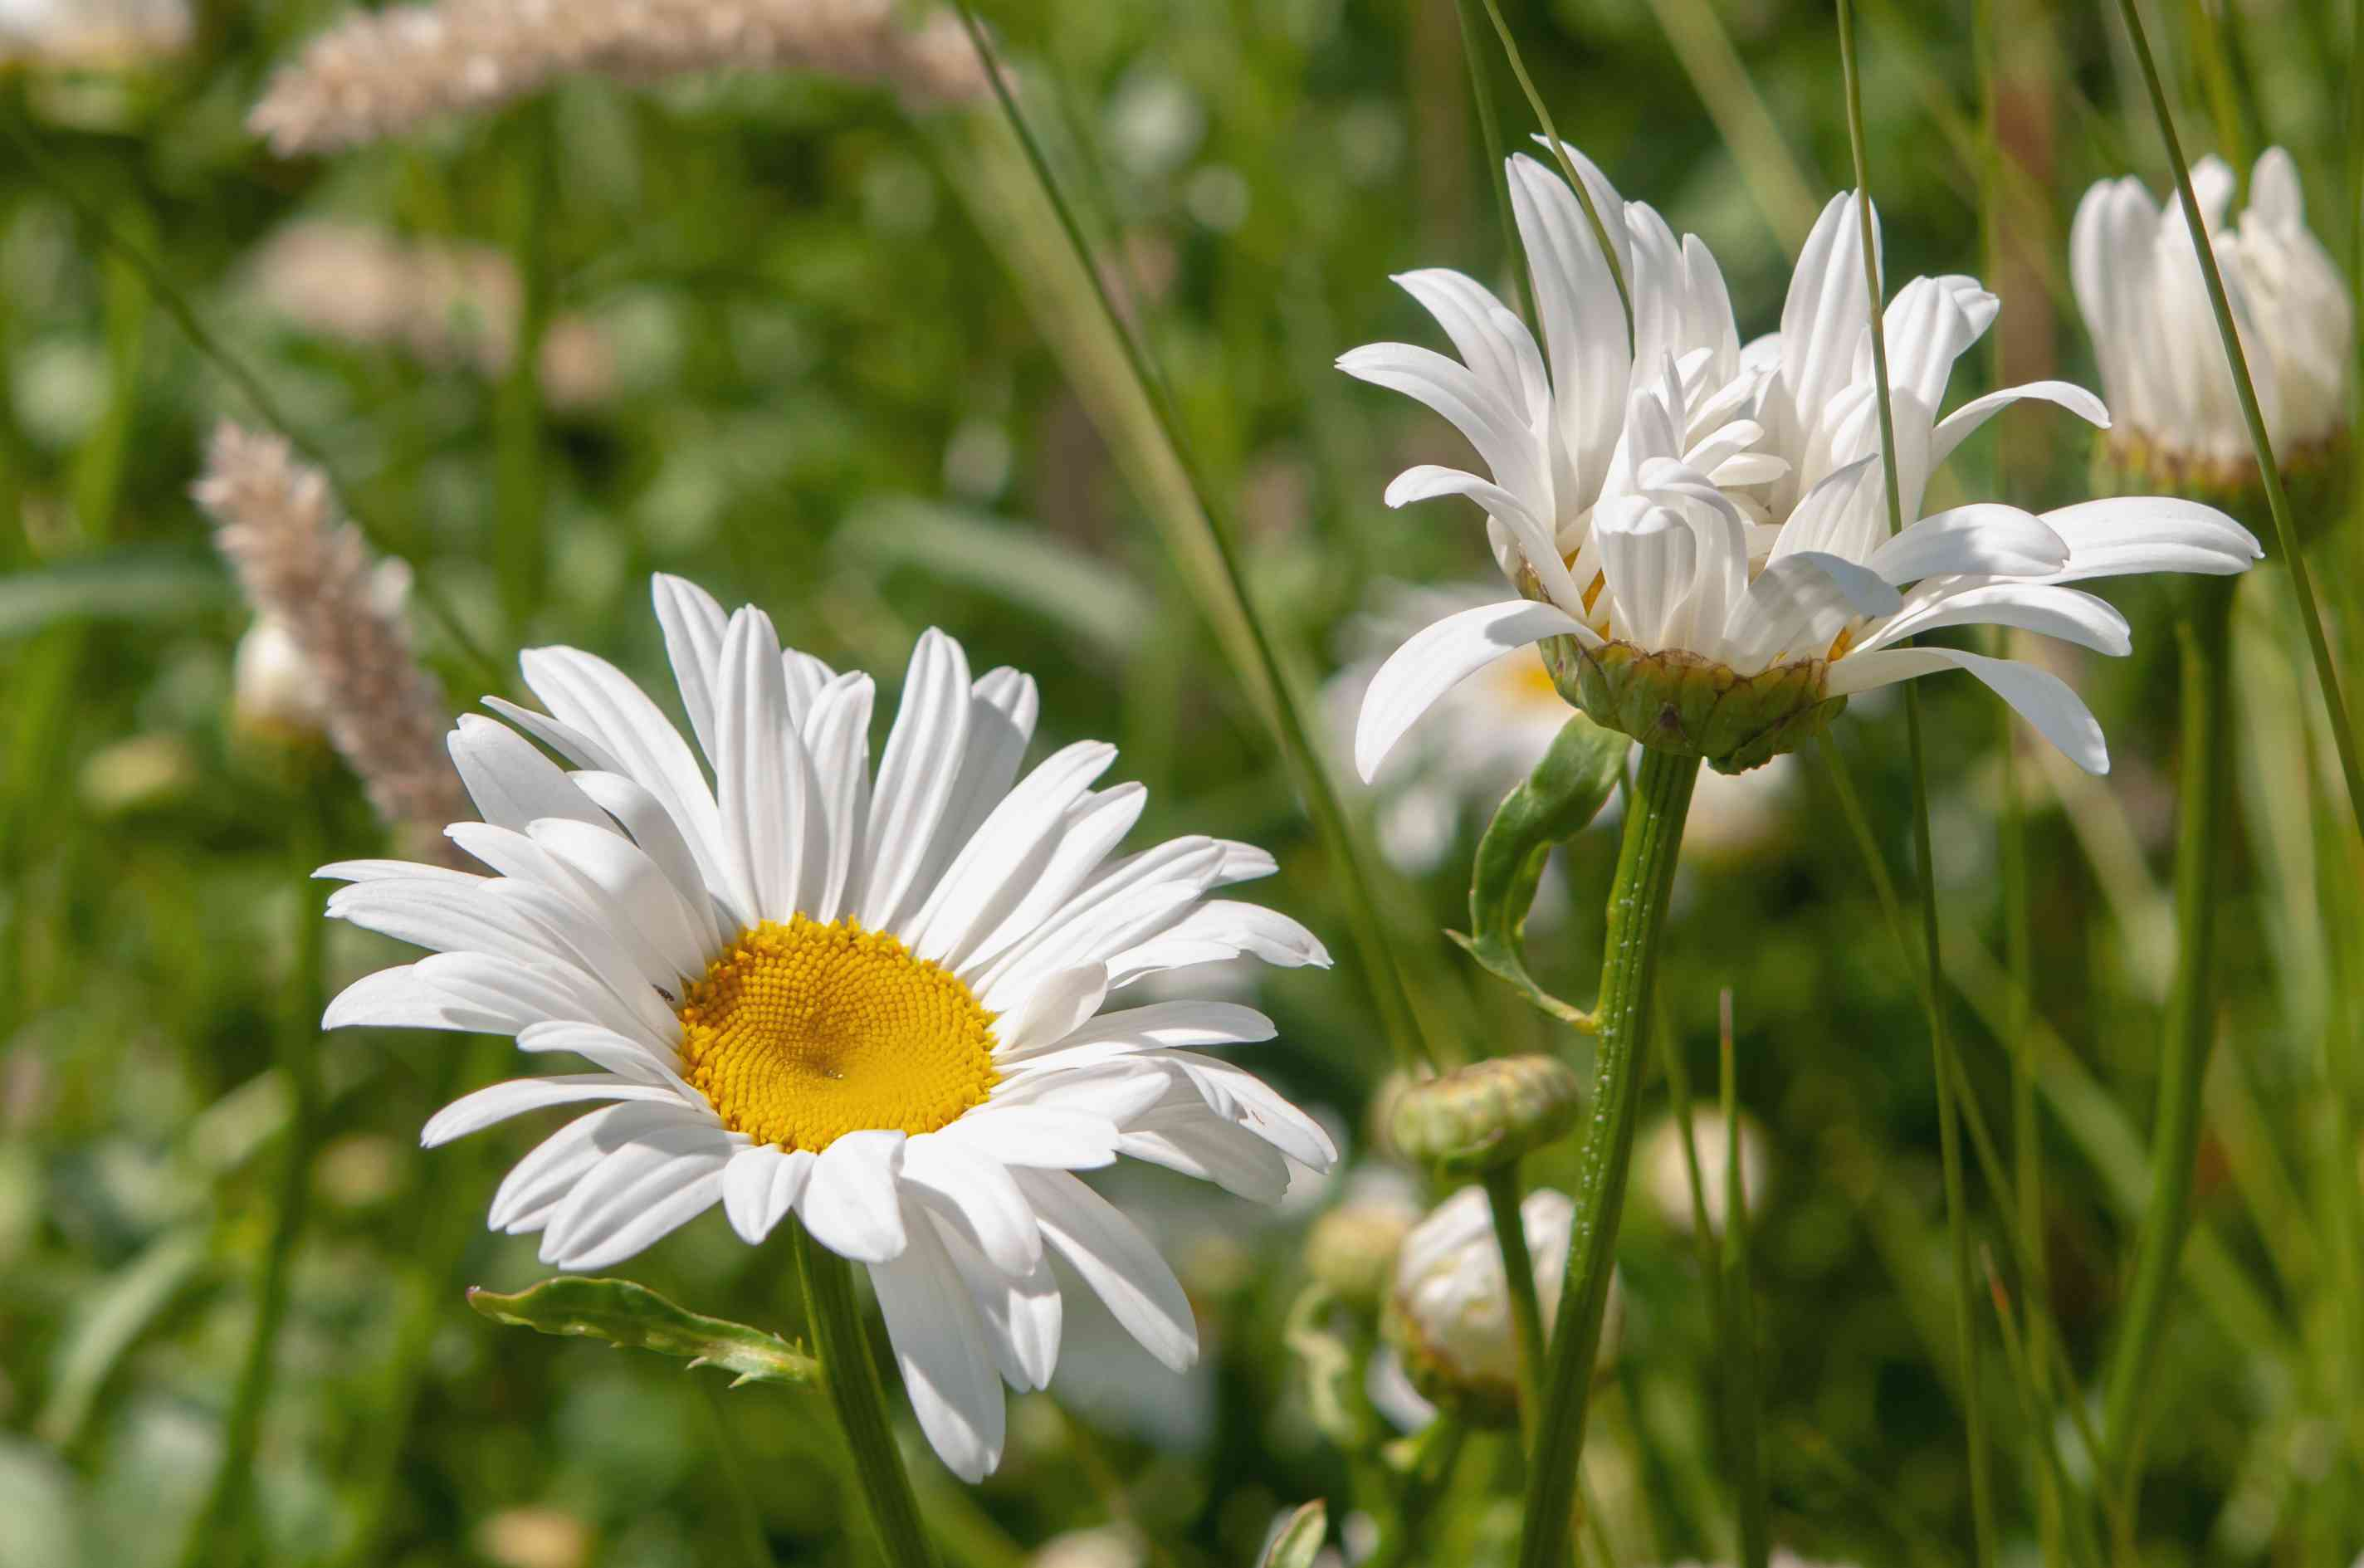 Shasta daisies with white flowers in sunlight closeup